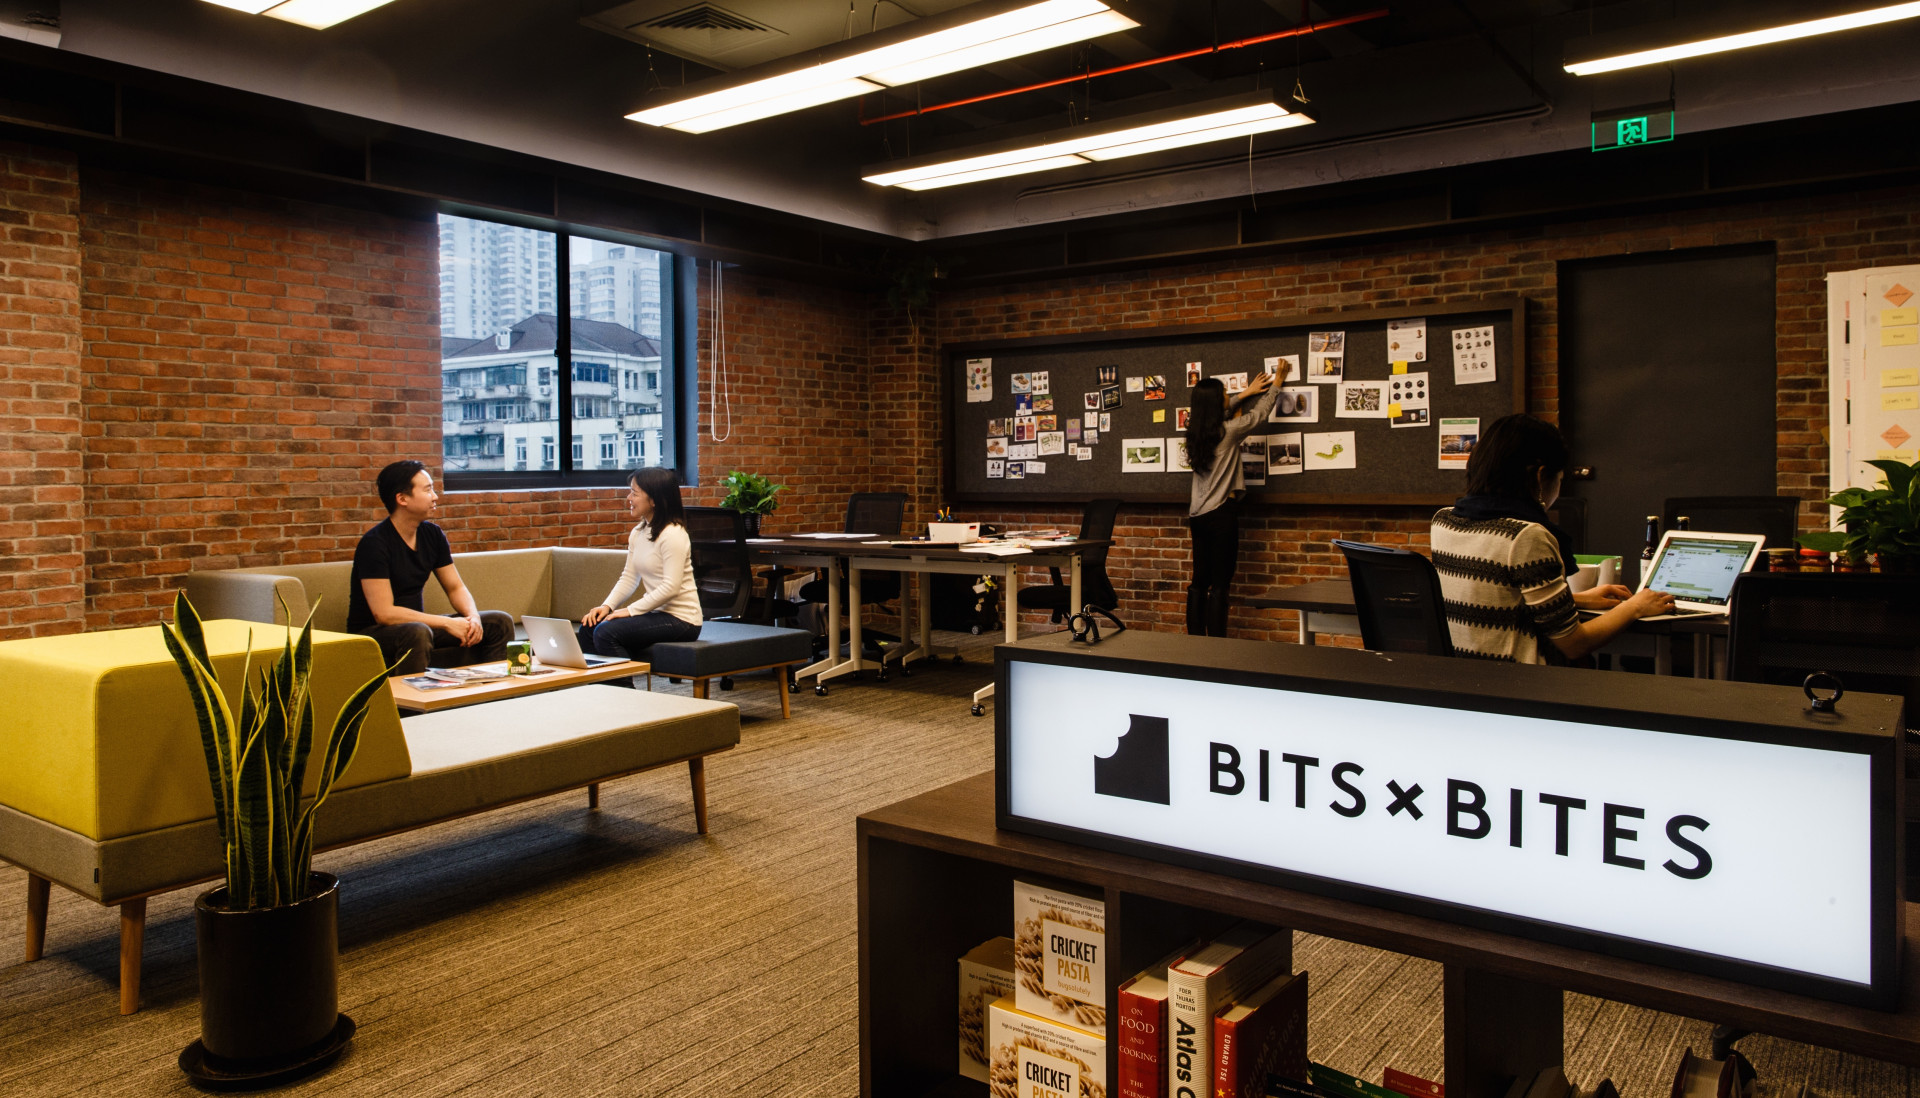 The Bits x Bites space in Shanghai